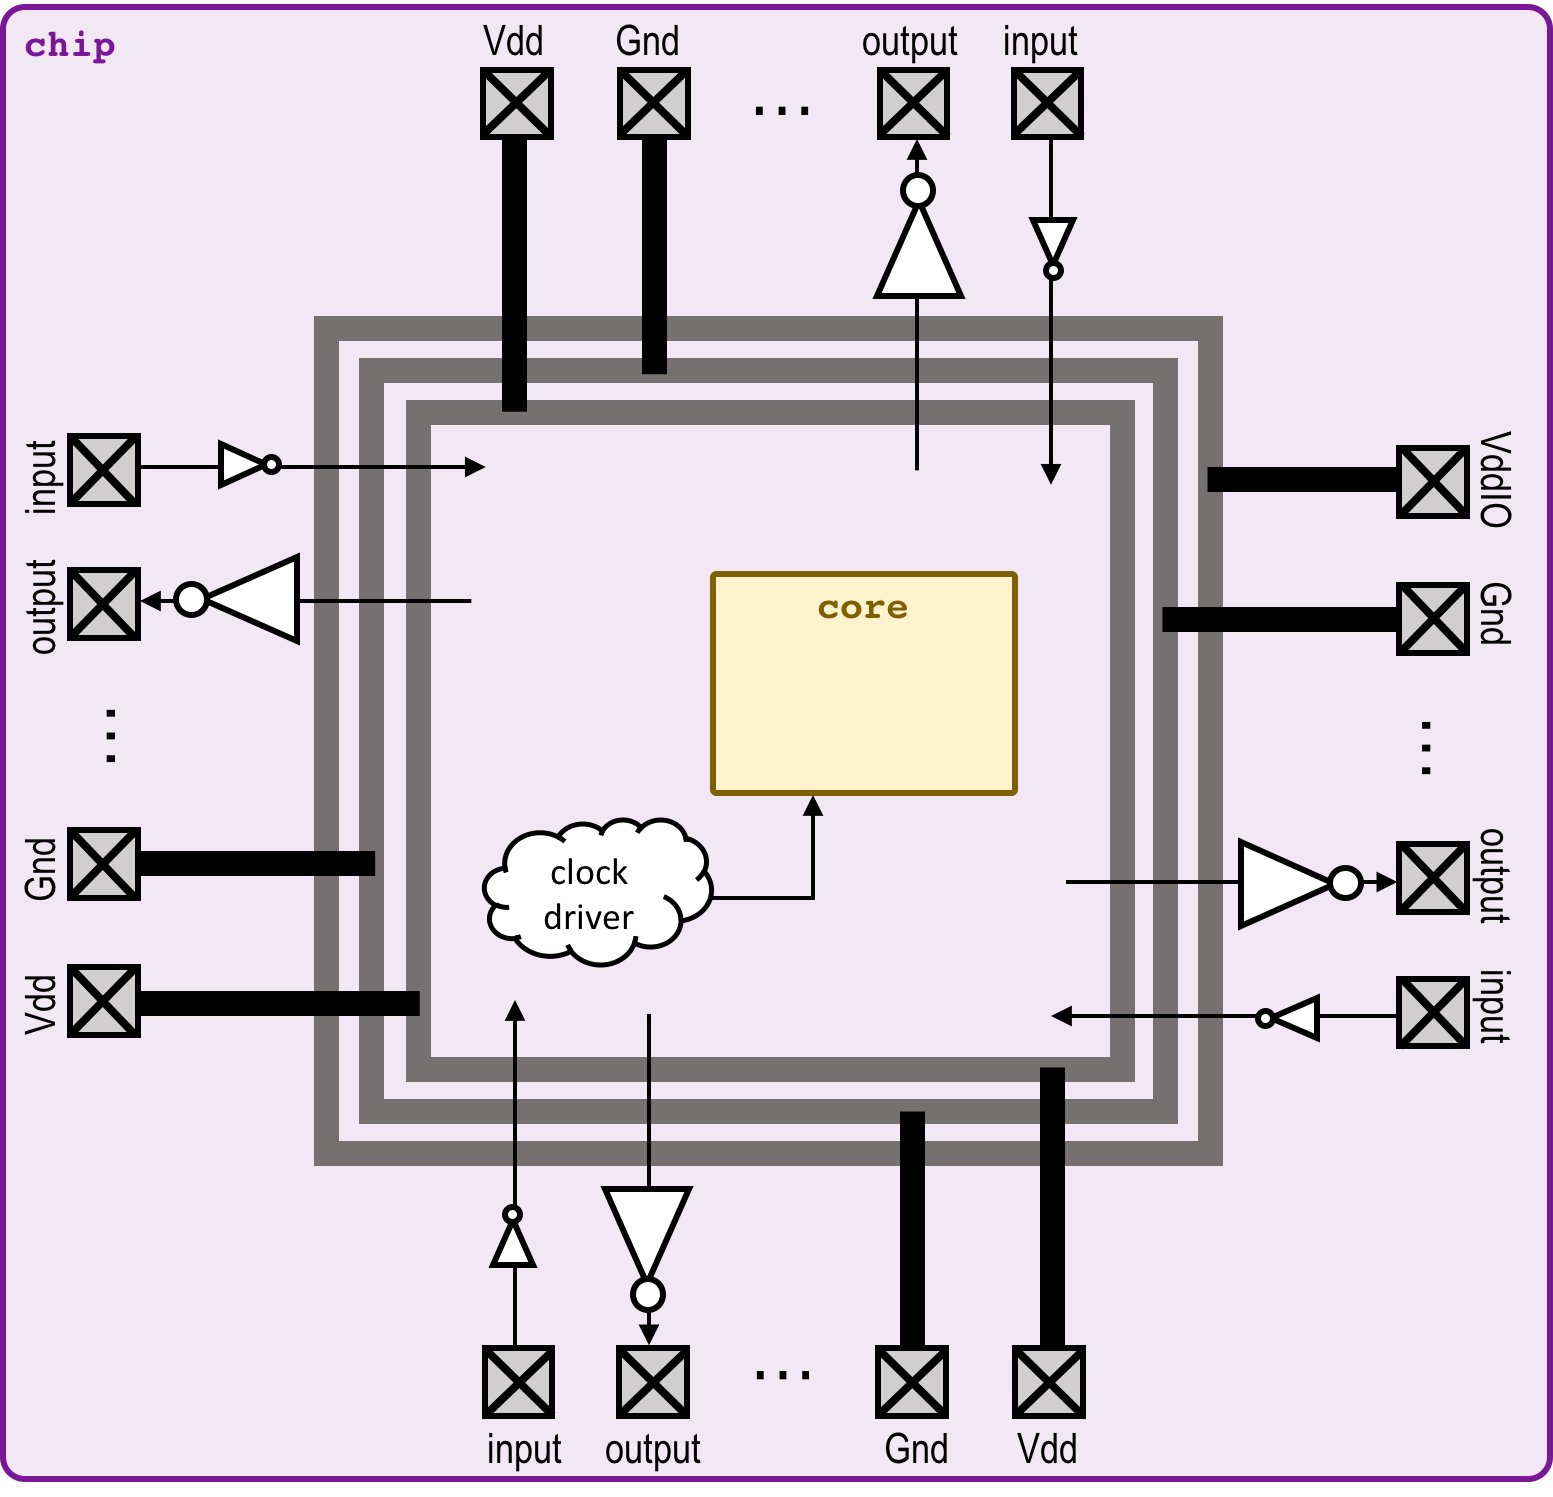 Eec 116 Vlsi Design Final Project Hall Of Fame Circuit Diagram Rules Block Chip